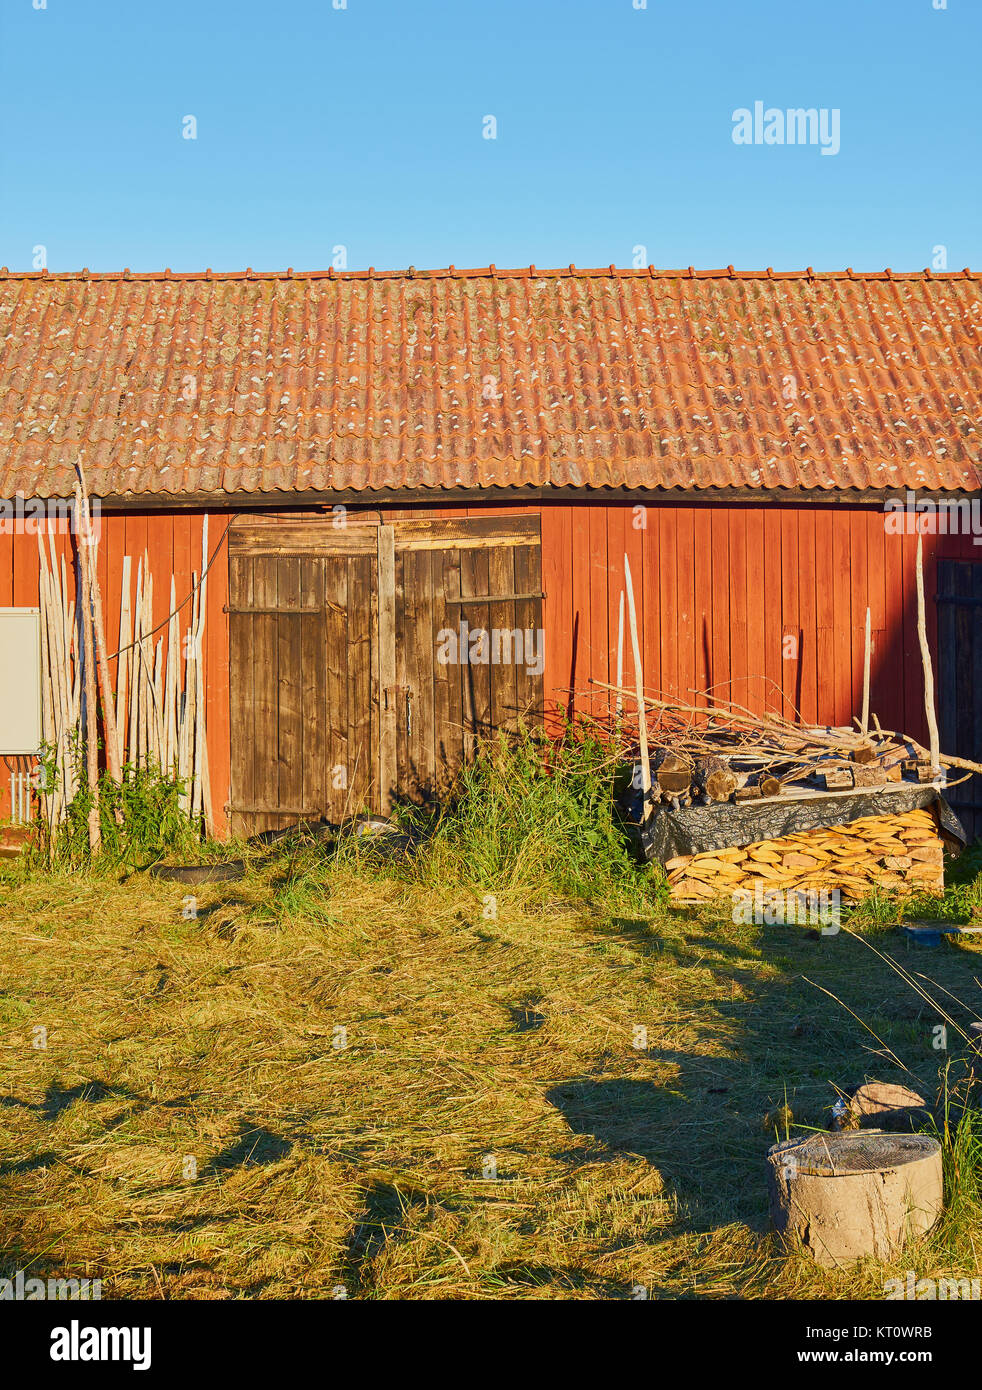 Rural scene with timber building and chopped wood, Graso, Uppland Province, Stockholm archipelago, Sweden, Scandinavia. - Stock Image